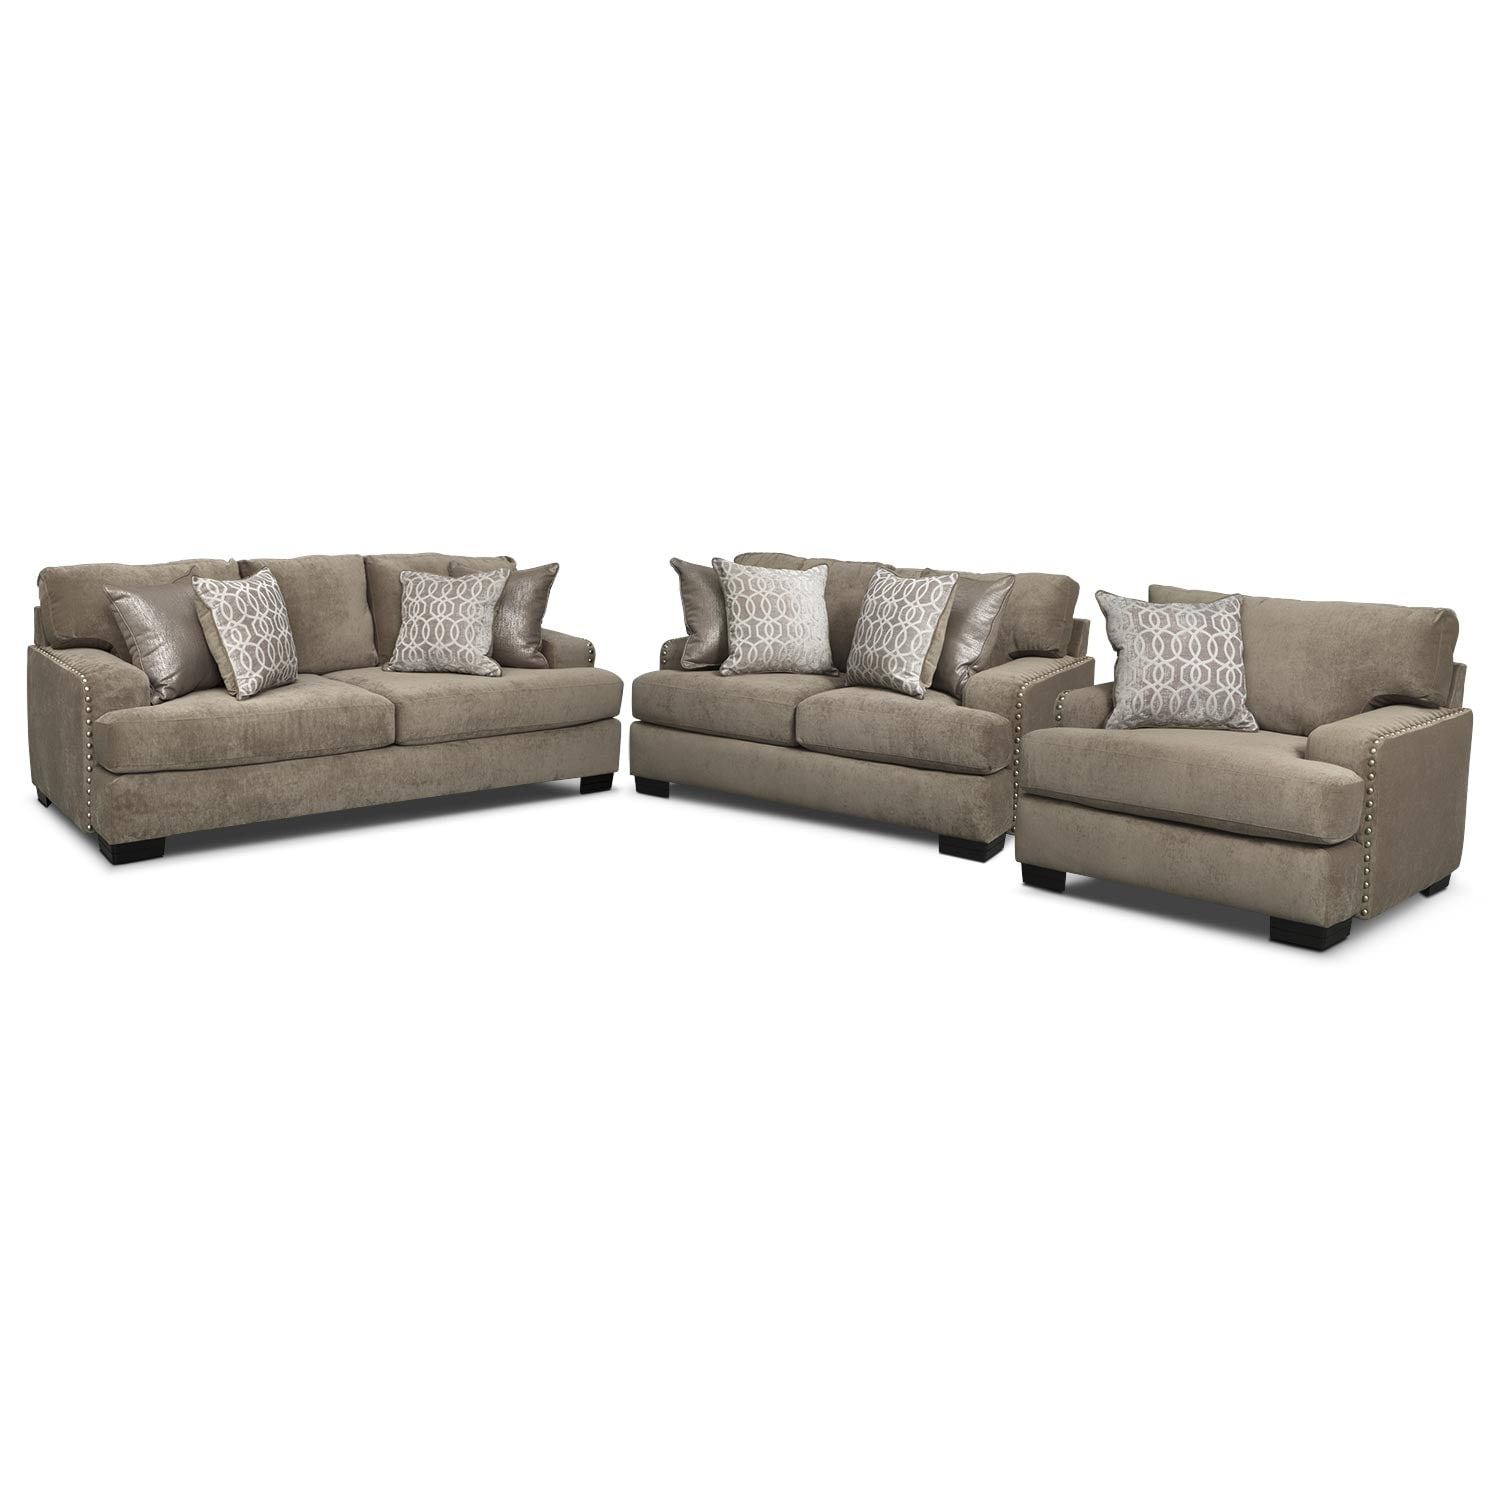 Living Room Furniture - Tempo 3 Pc. Living Room